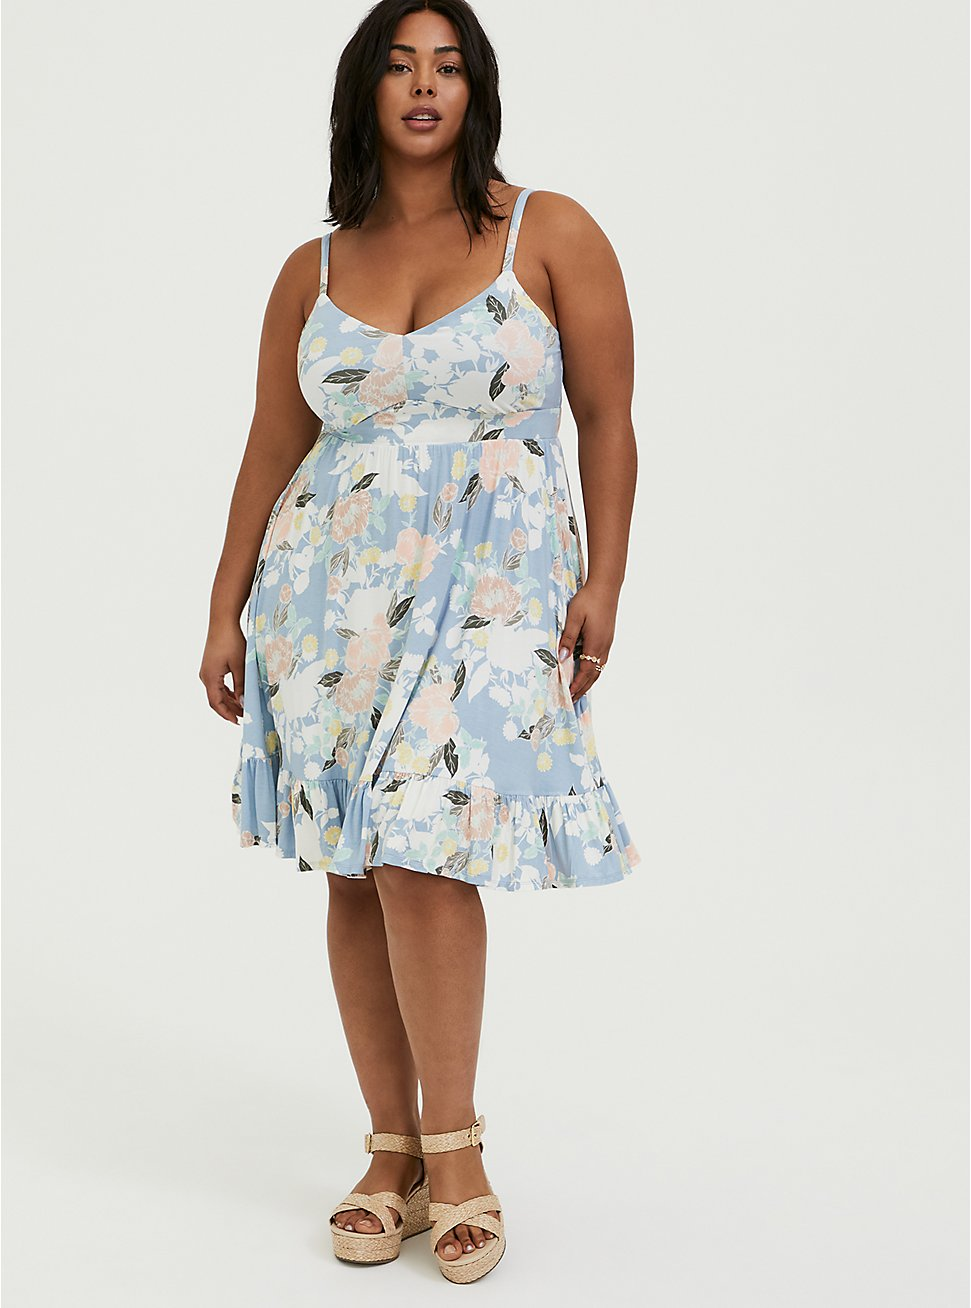 Plus Size Super Soft Light Blue Floral Shirred Hem Skater Dress, FLORALS-BLUE, hi-res